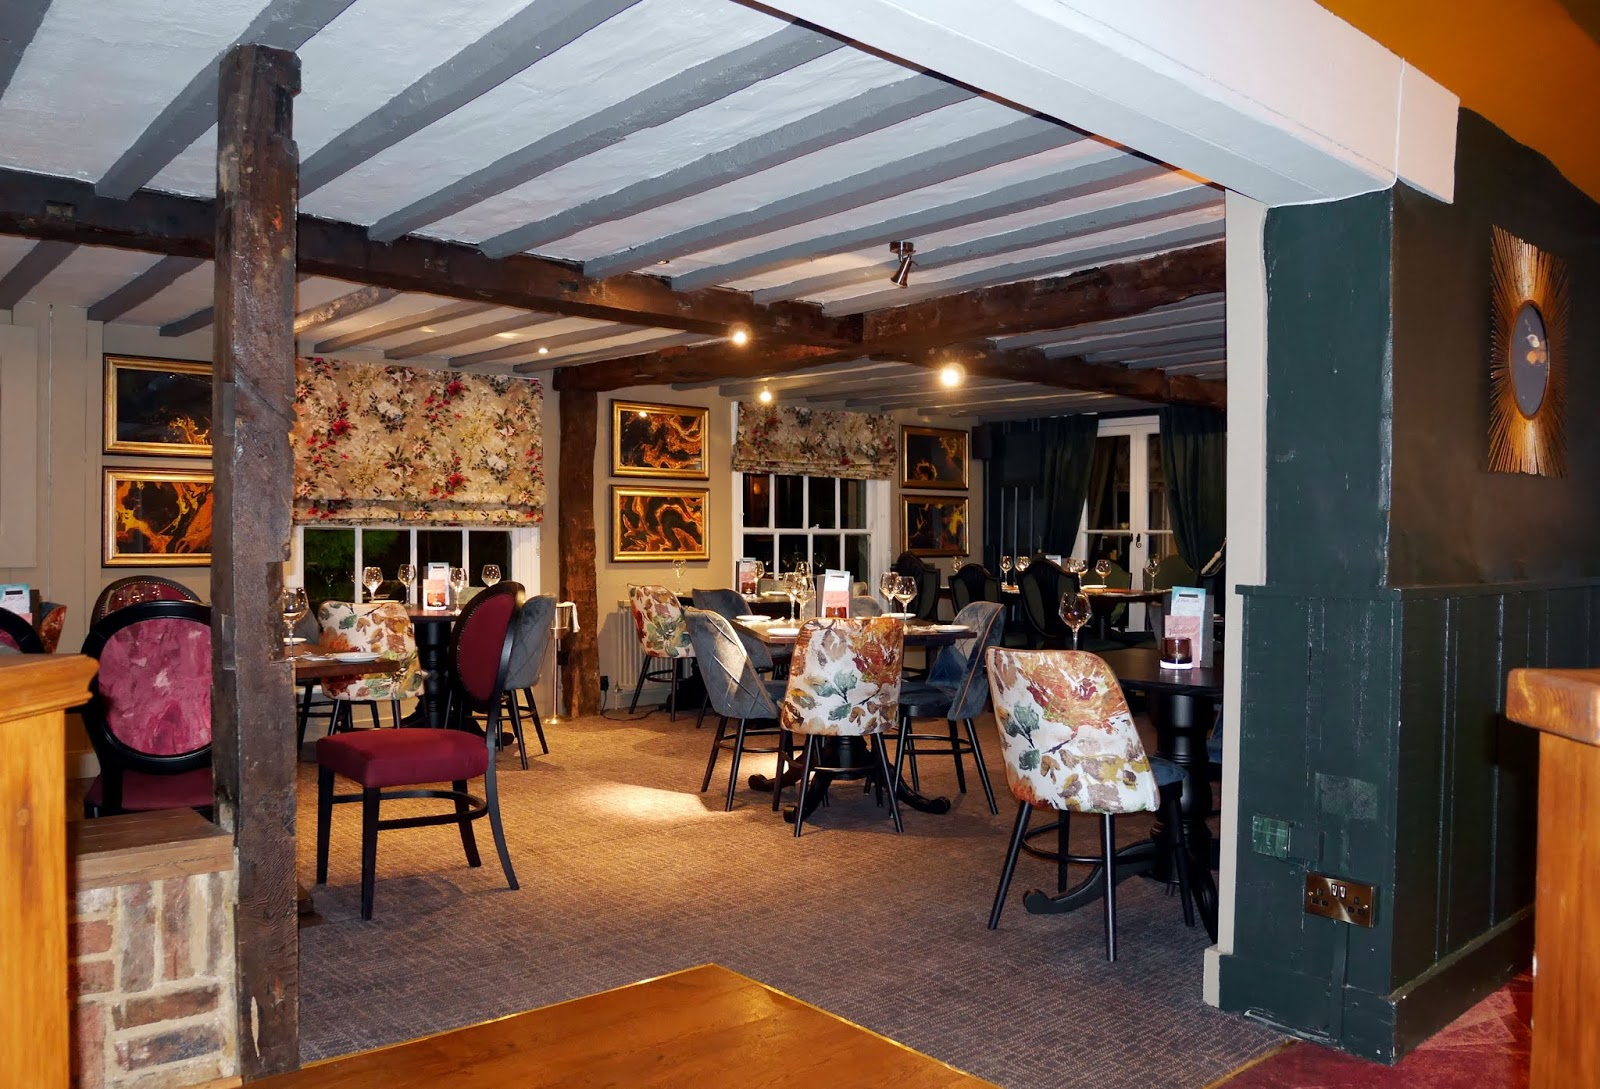 A dining area at The Horseshoes in East Farleigh, Kent